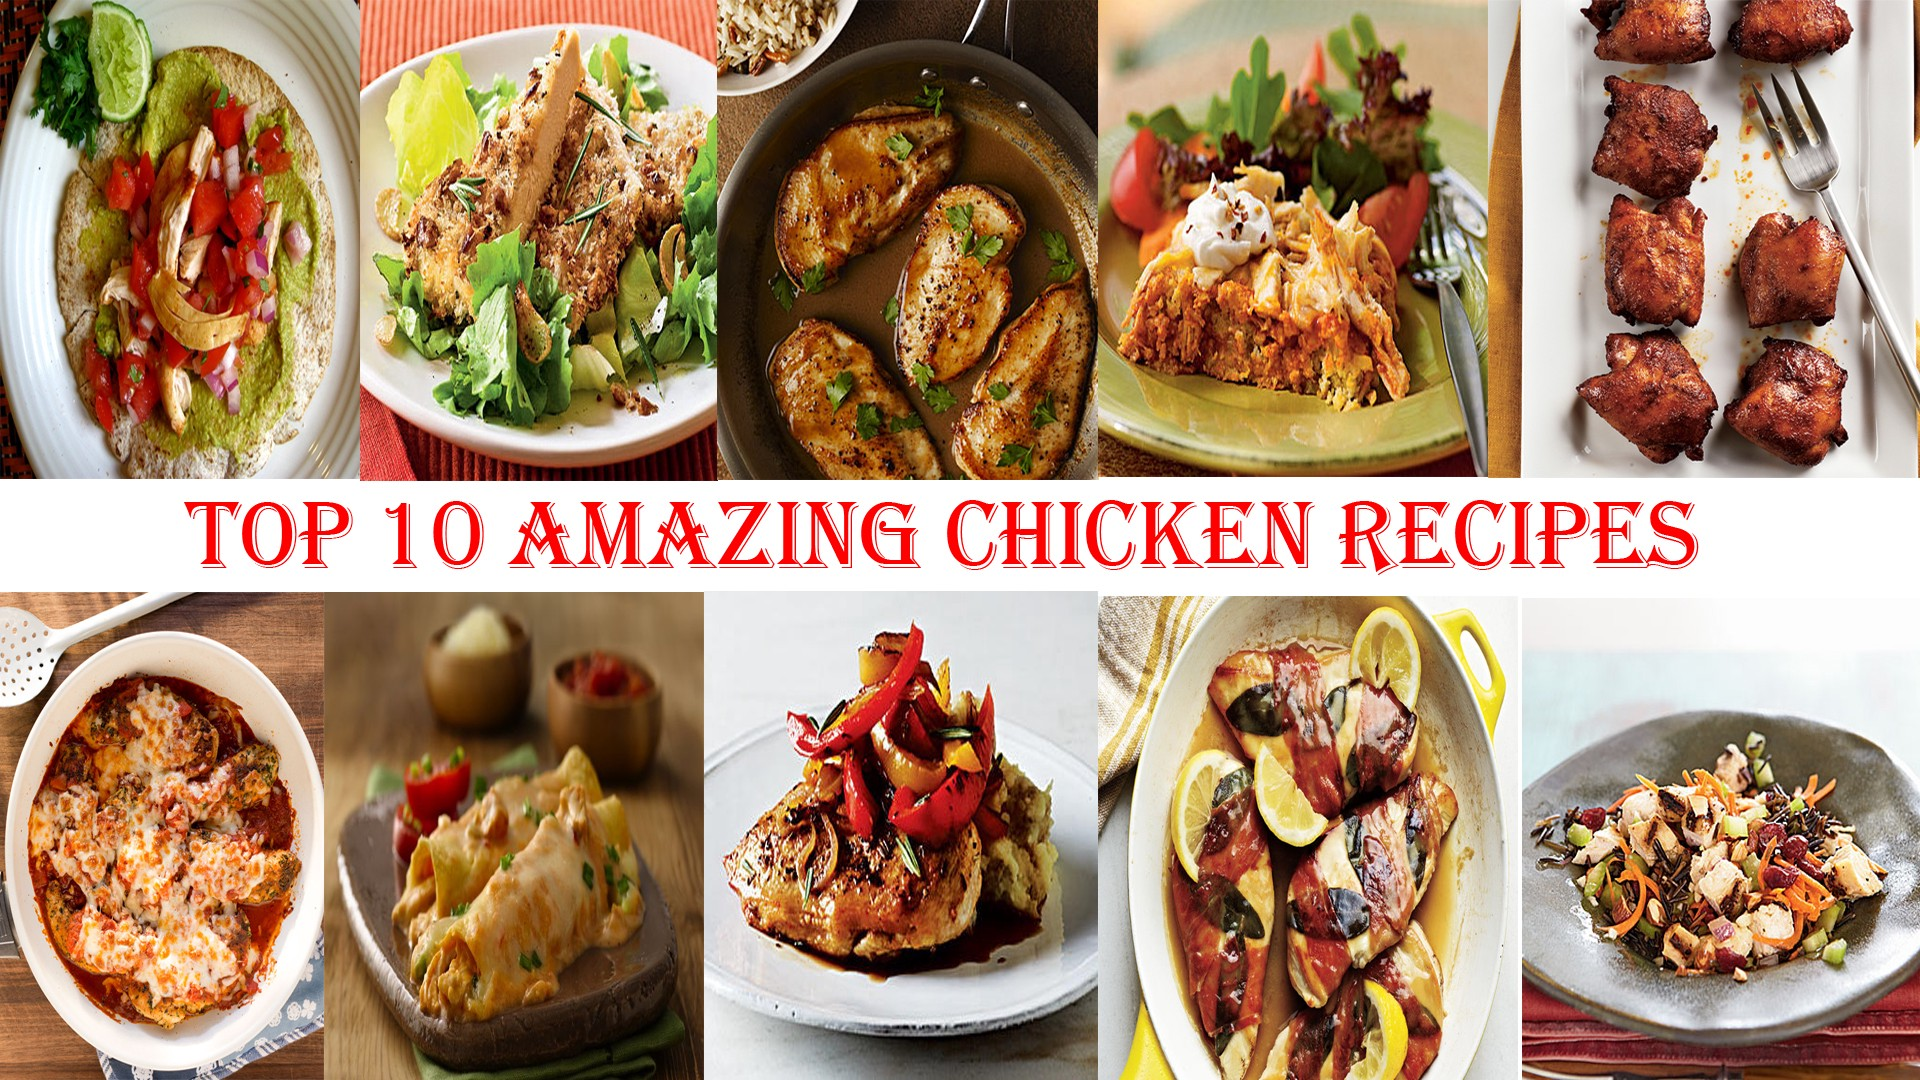 Top 10 Amazing Chicken Recipes For Bodybuilding Superfoods By Mr Some Medium